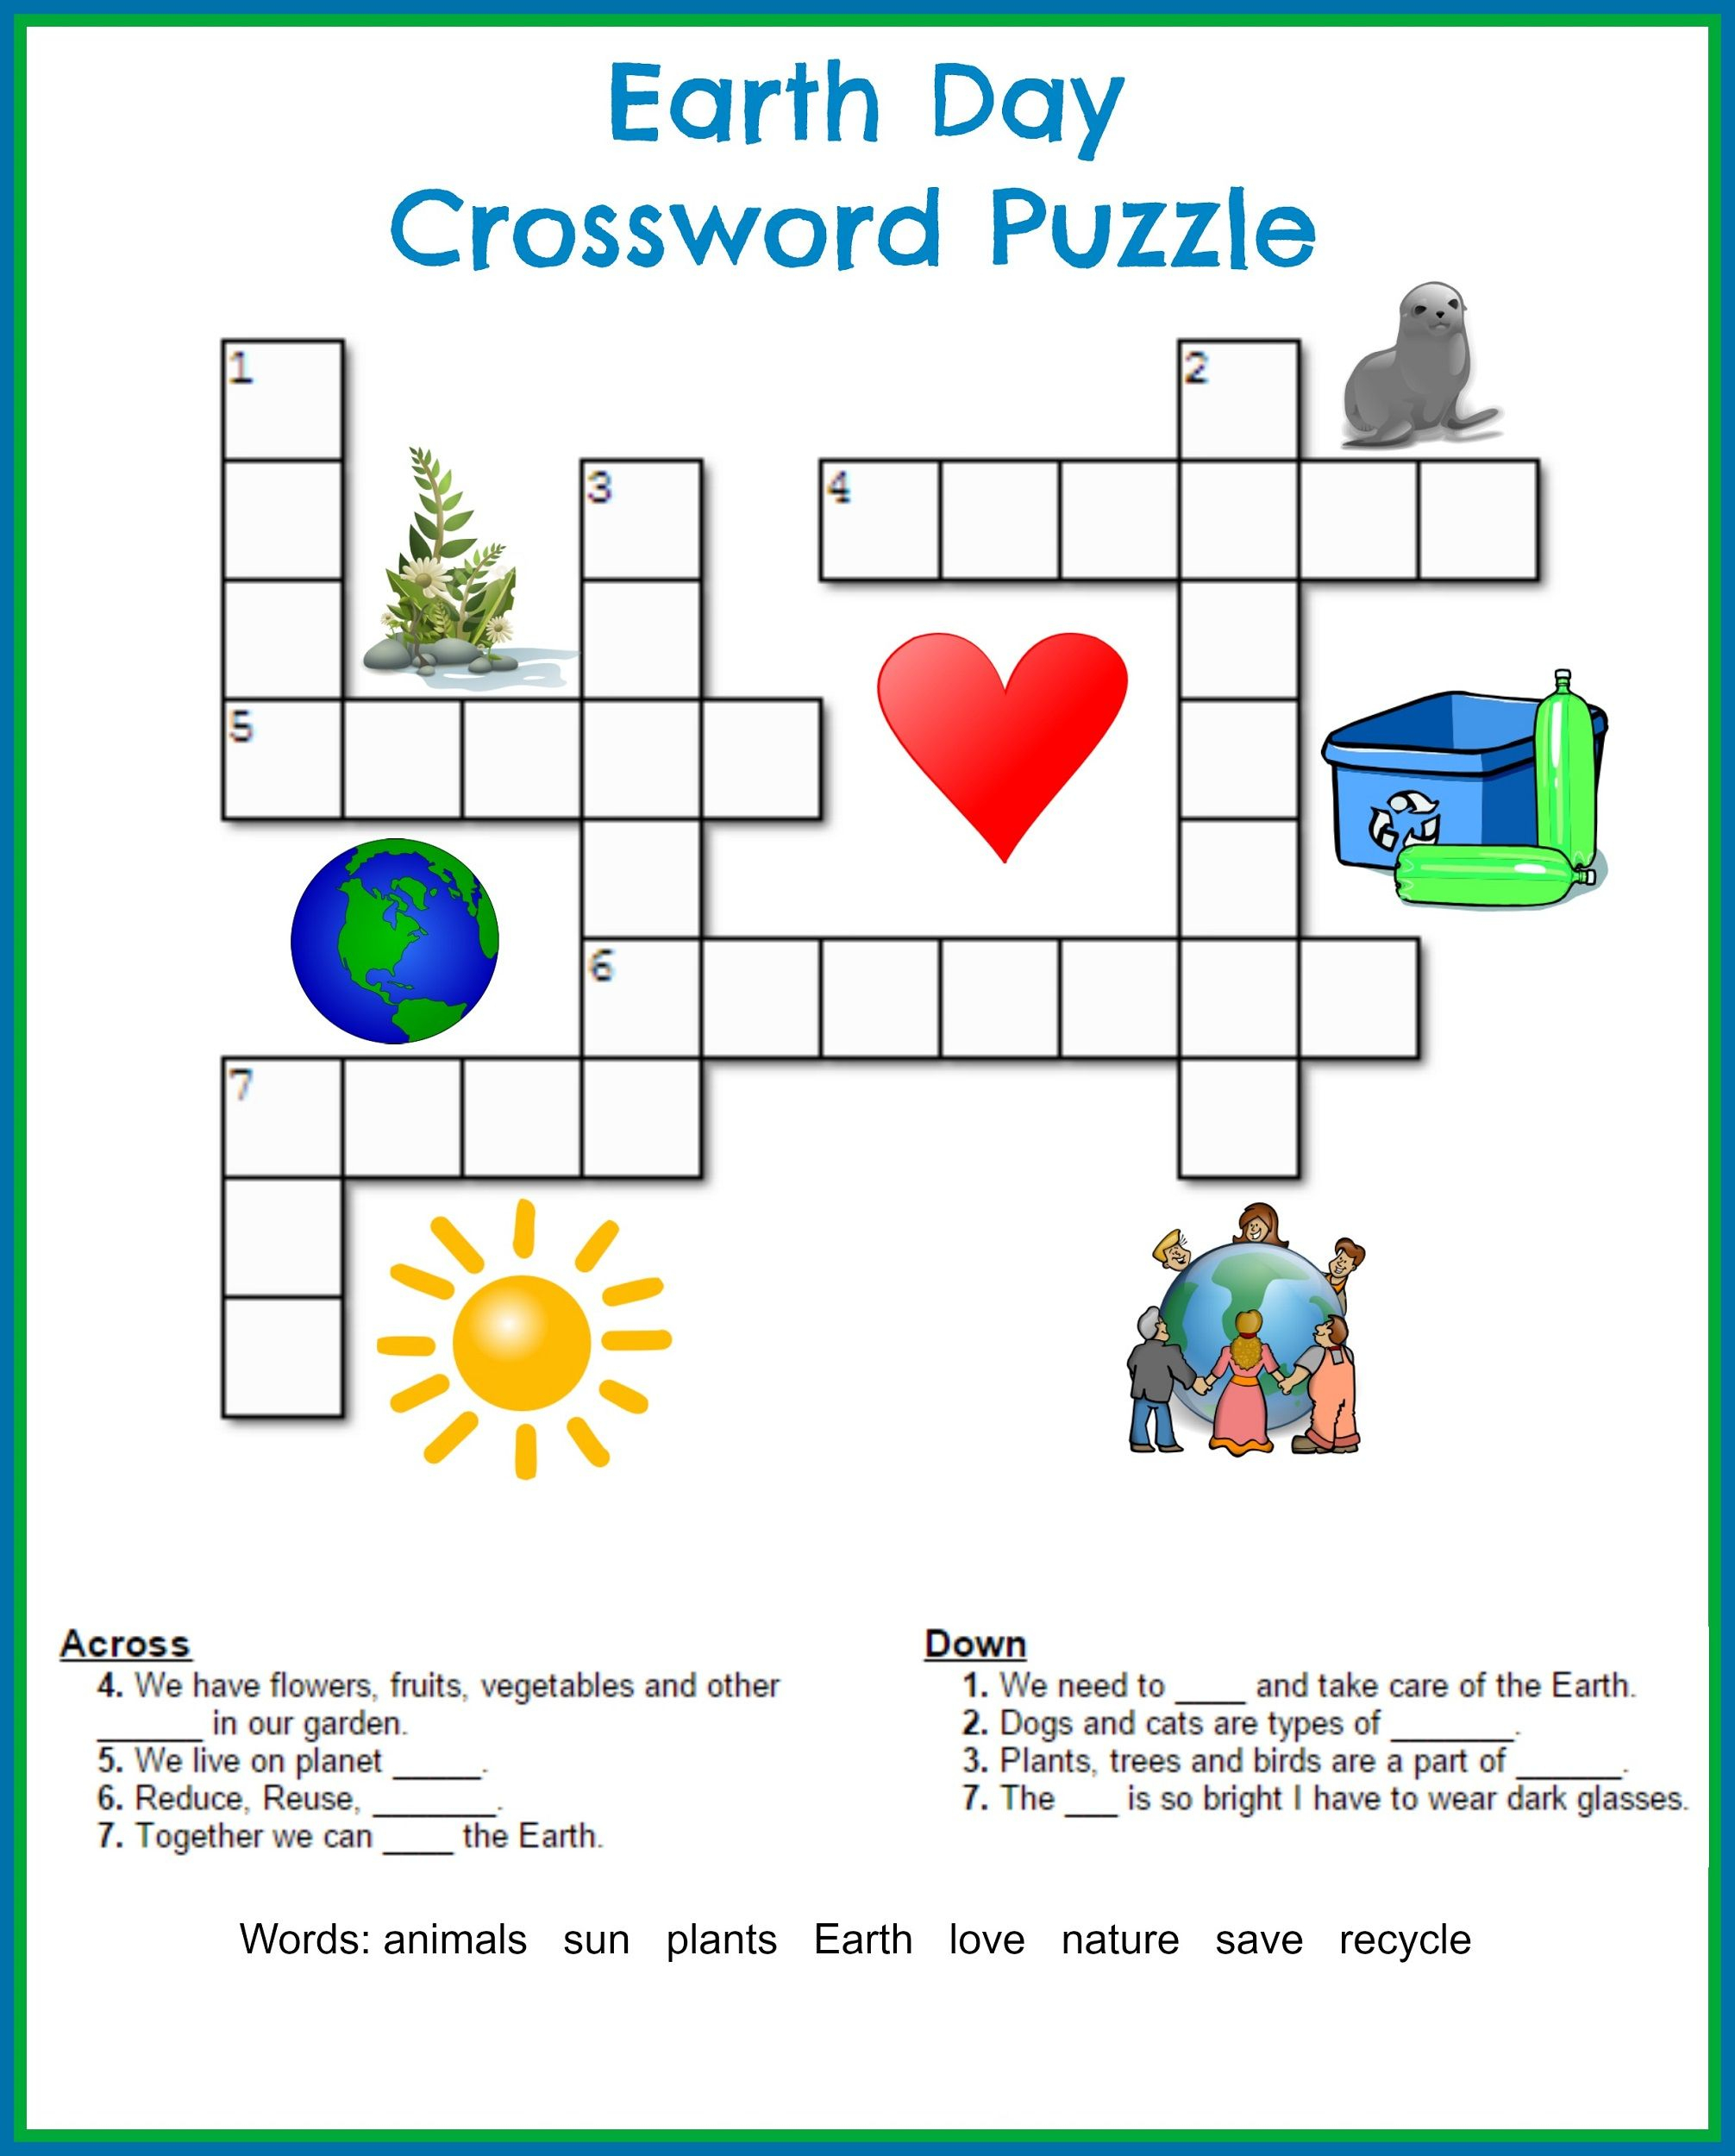 Printable Crossword Puzzles Kids | Crossword Puzzles On Earth - Printable Crossword Puzzles For Preschoolers